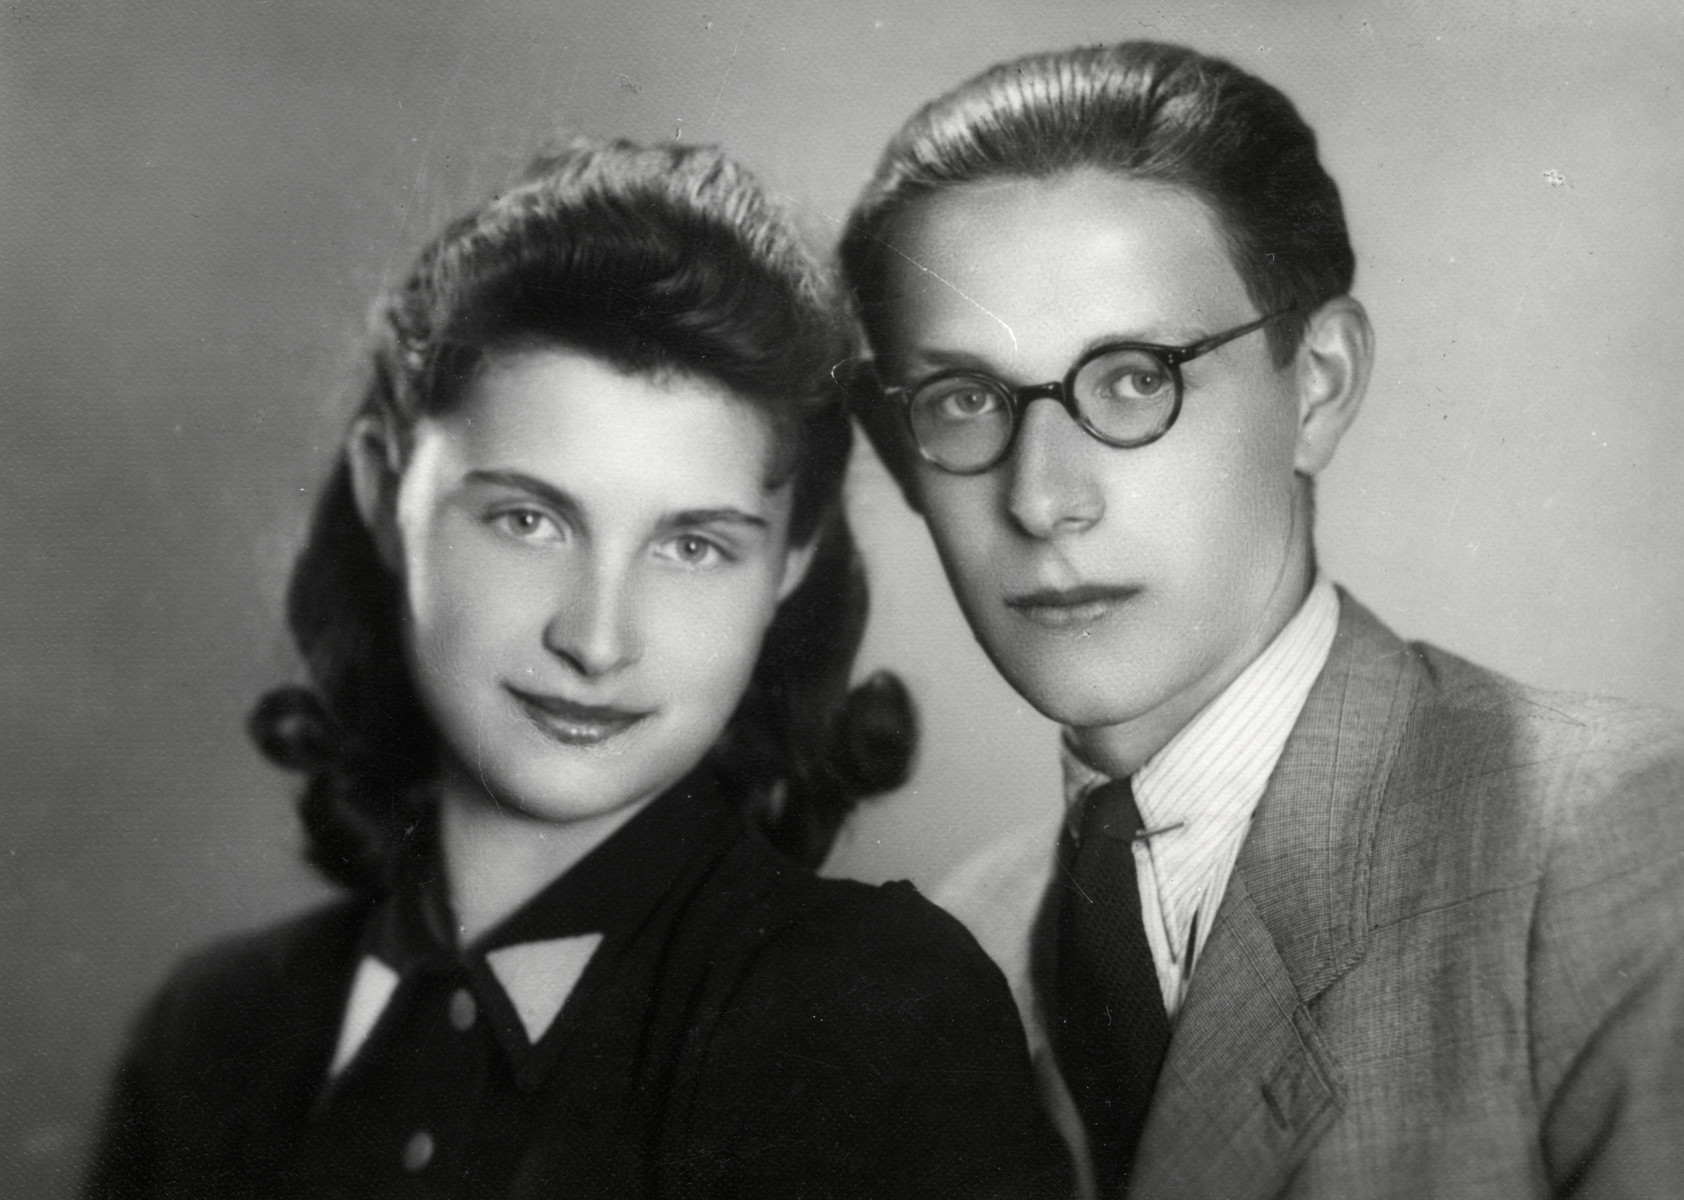 Studio portrait of brother and sister Katerina and Fritzi Eckstein.